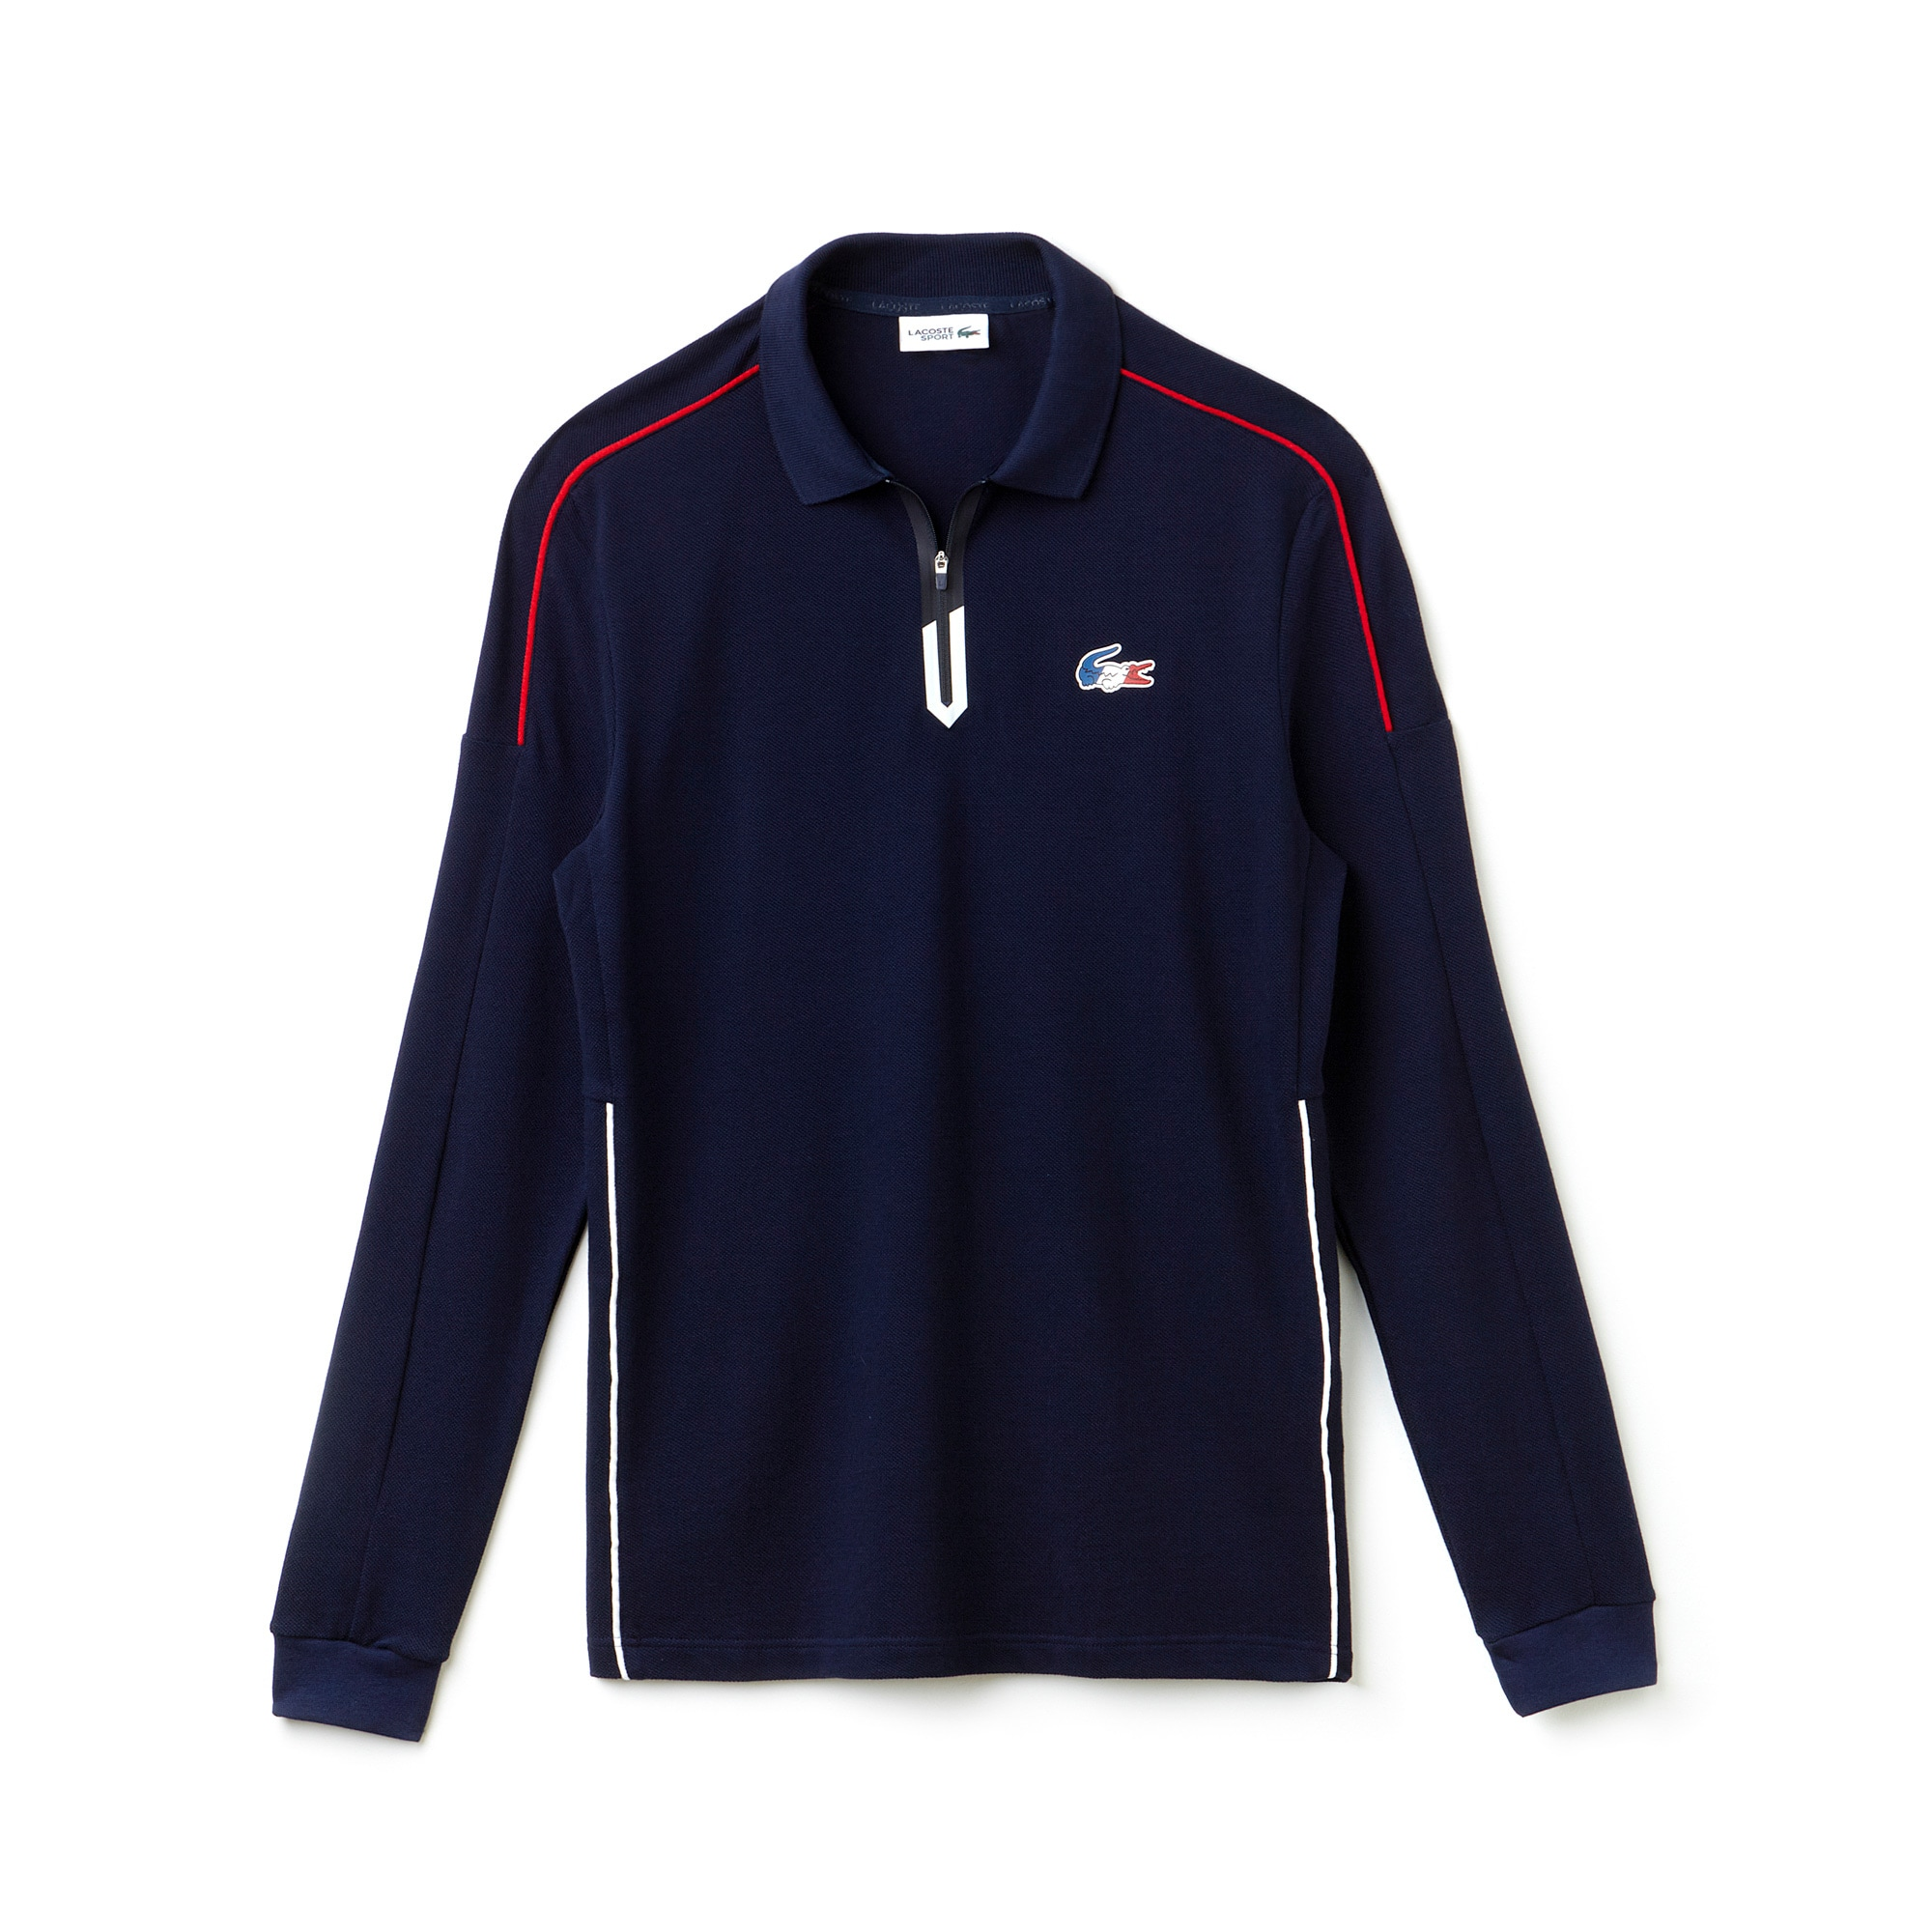 Men's French Sporting Spirit Edition Thick Piqué Polo